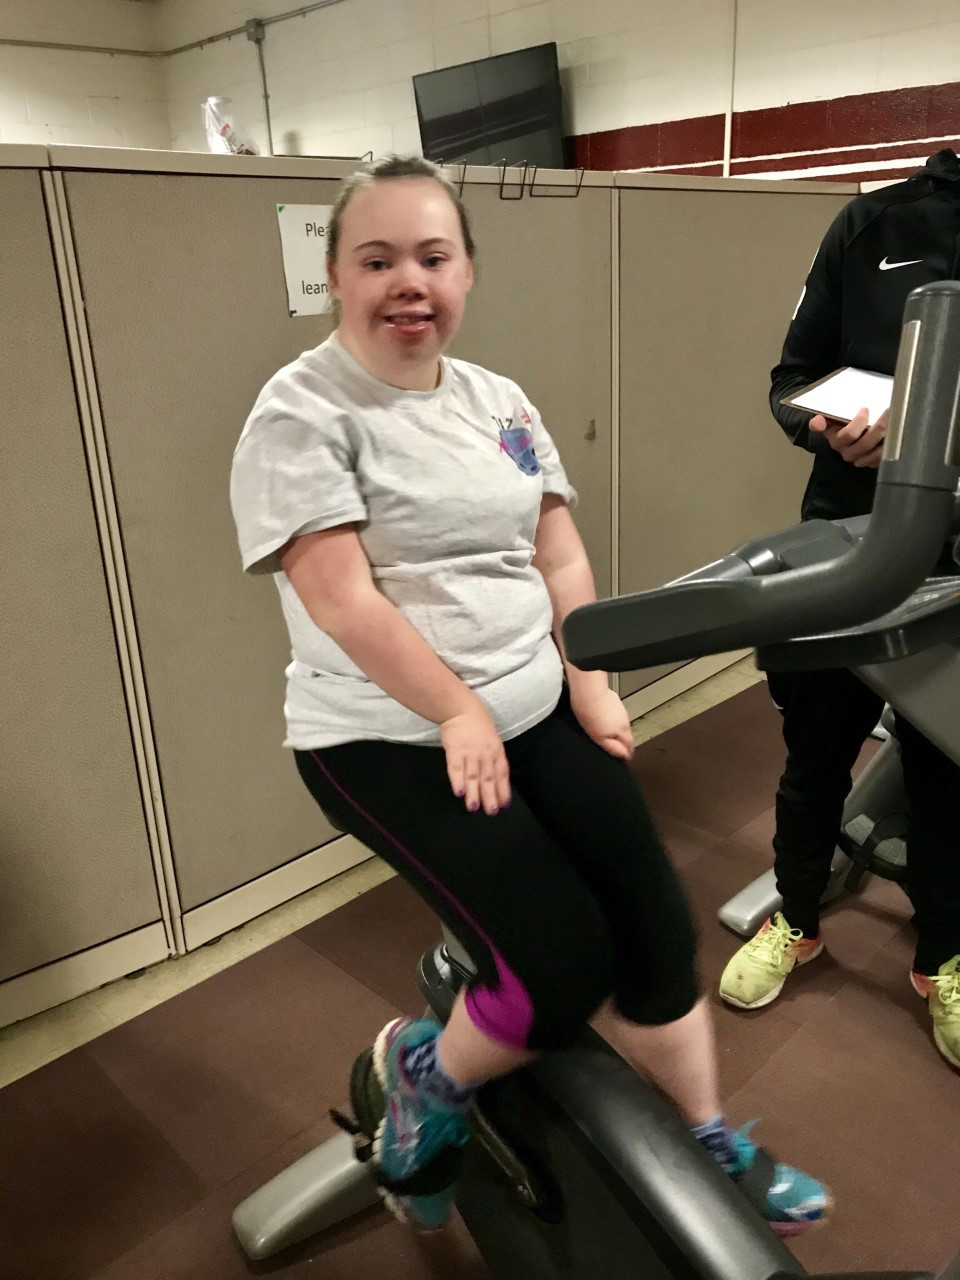 Image of Jen Barrett, wearing a gray t-shirt and black leggings, sitting atop an exercise bike at the UMass Body Shop.